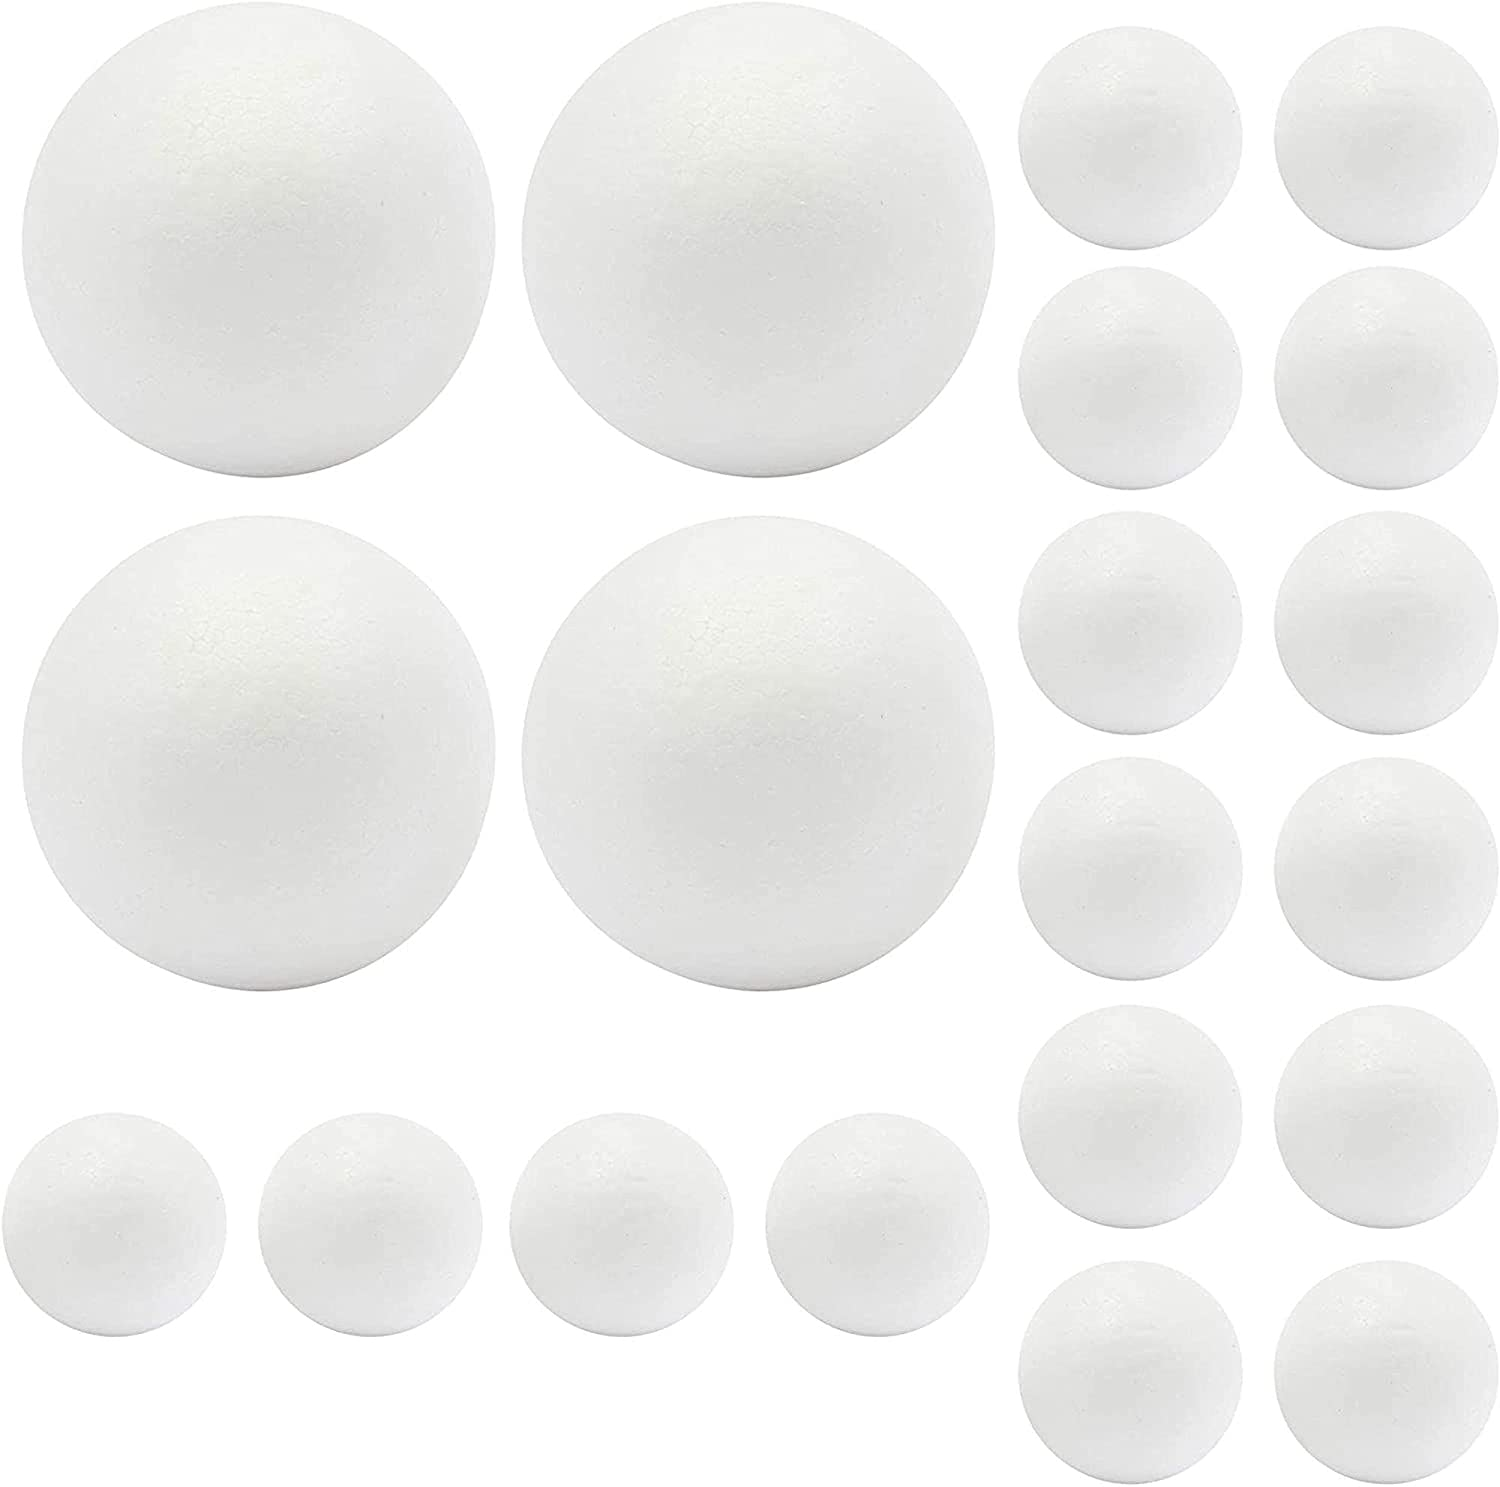 Foam Balls for Arts, DIY Crafts Supplies, Decor (White, 6 in, 3 in, 20 Pack)